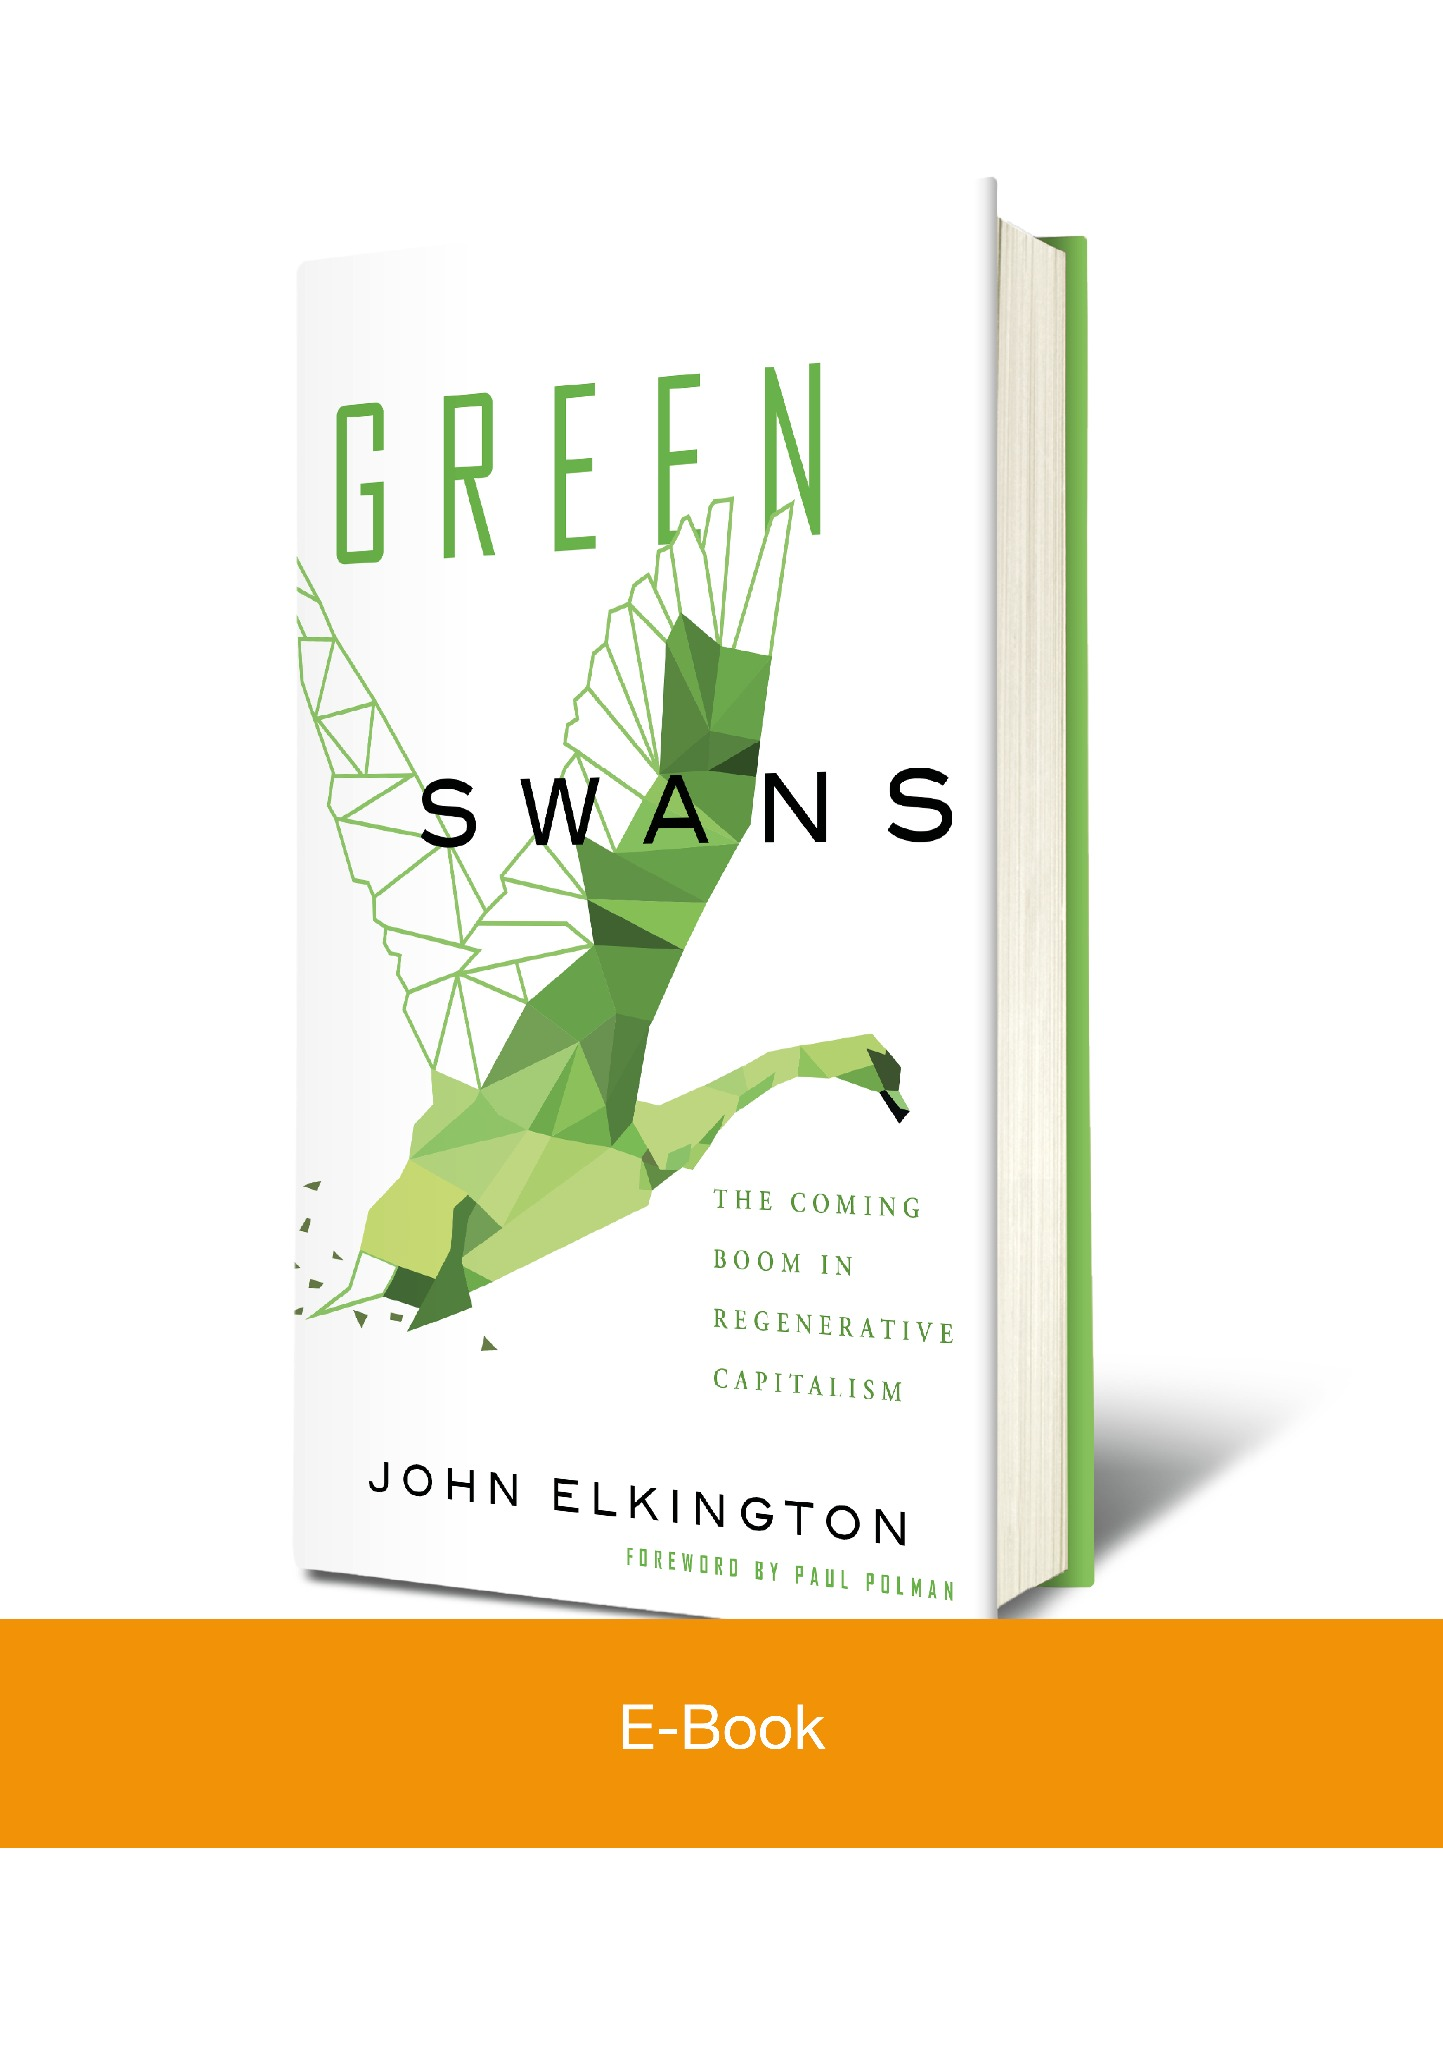 (E-Book) Green Swans: The Coming Boom in Regenerative Capitalism